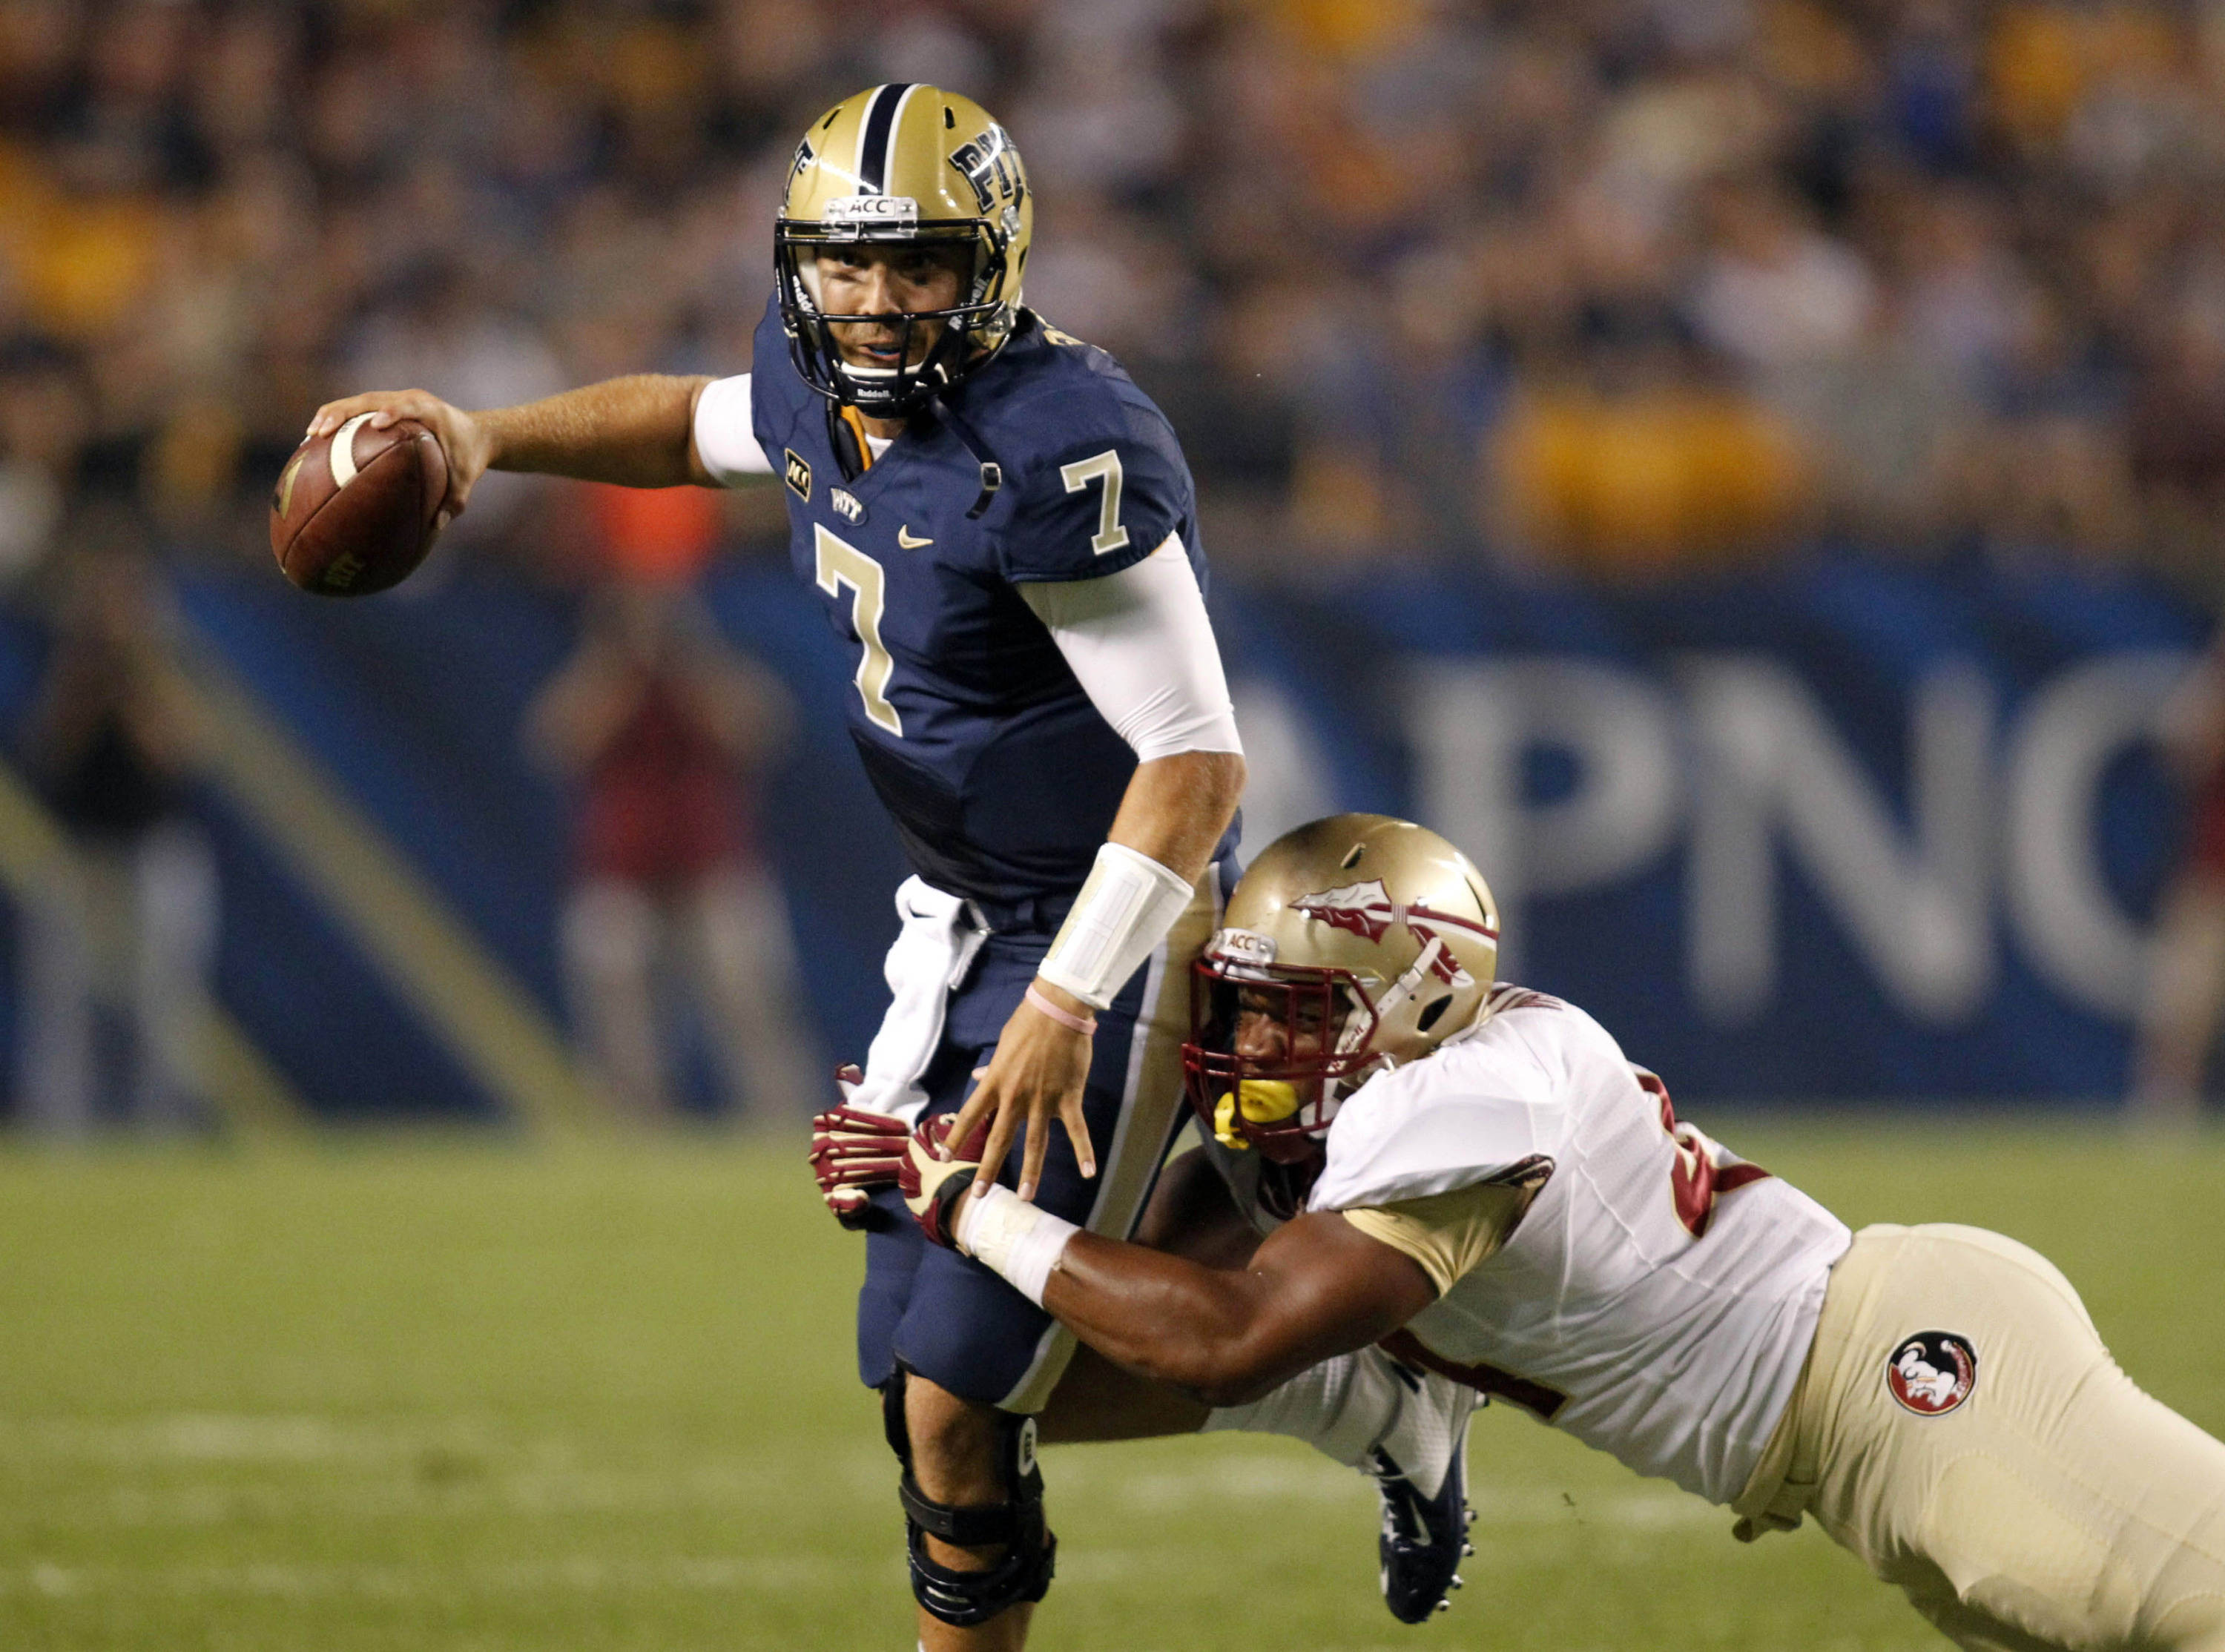 Pittsburgh Panthers quarterback Tom Savage (7) looks to pass under pressure from Florida State Seminoles defensive end DeMarcus Walker (44) during the first quarter at Heinz Field. Mandatory Credit: Charles LeClaire-USA TODAY Sports